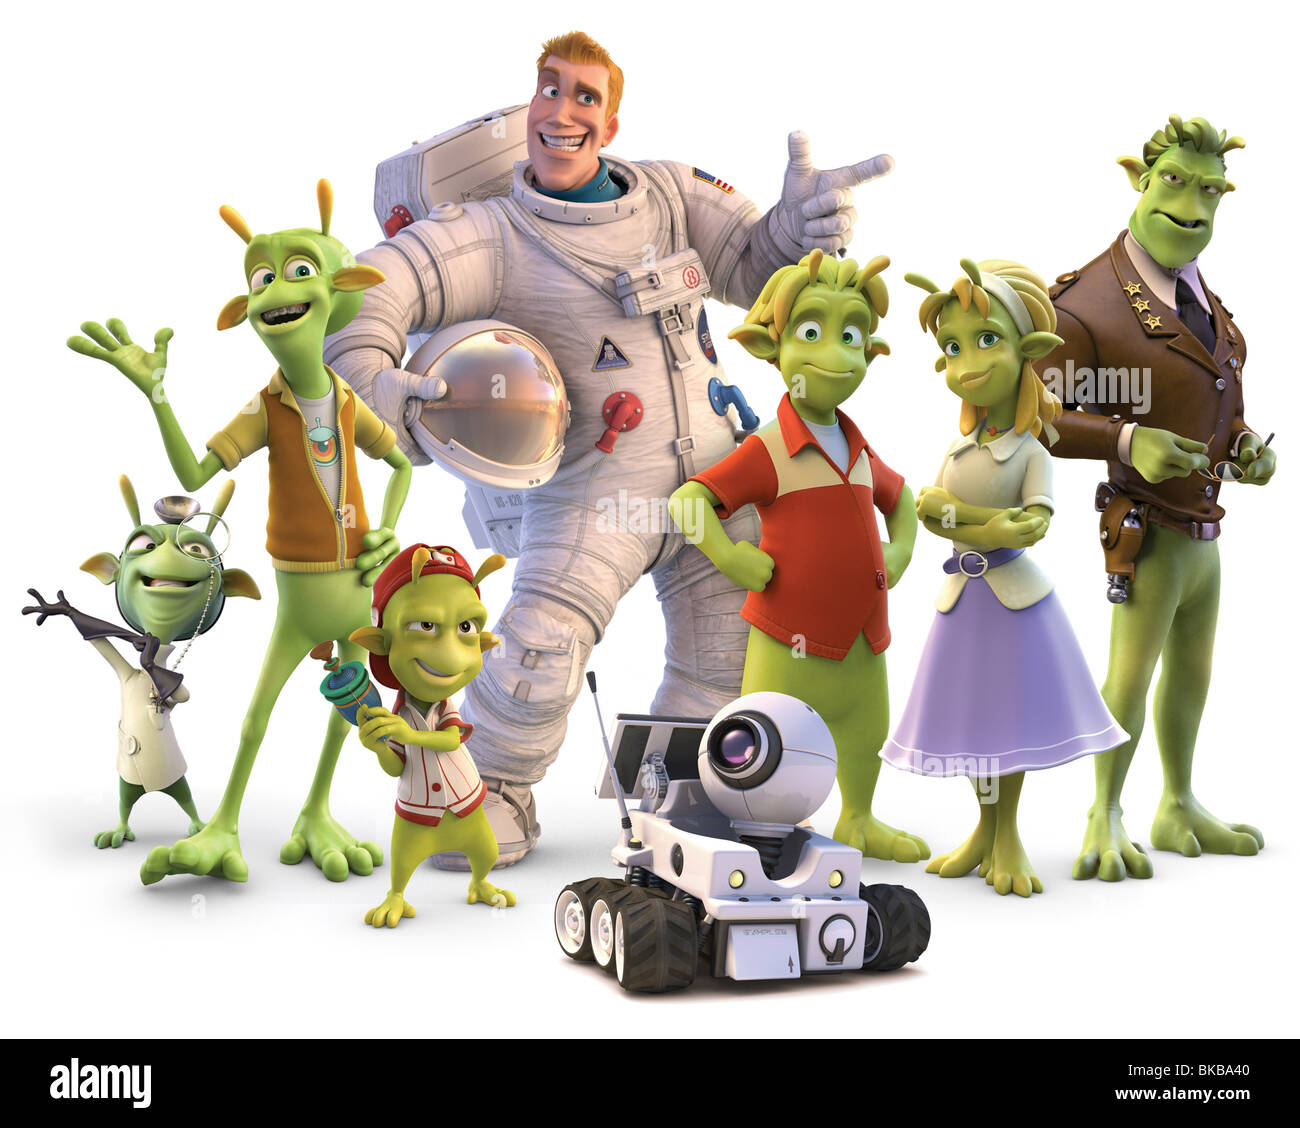 Planet 51 Year : 2009 Director : Jorge Blanco Animation - Stock Image